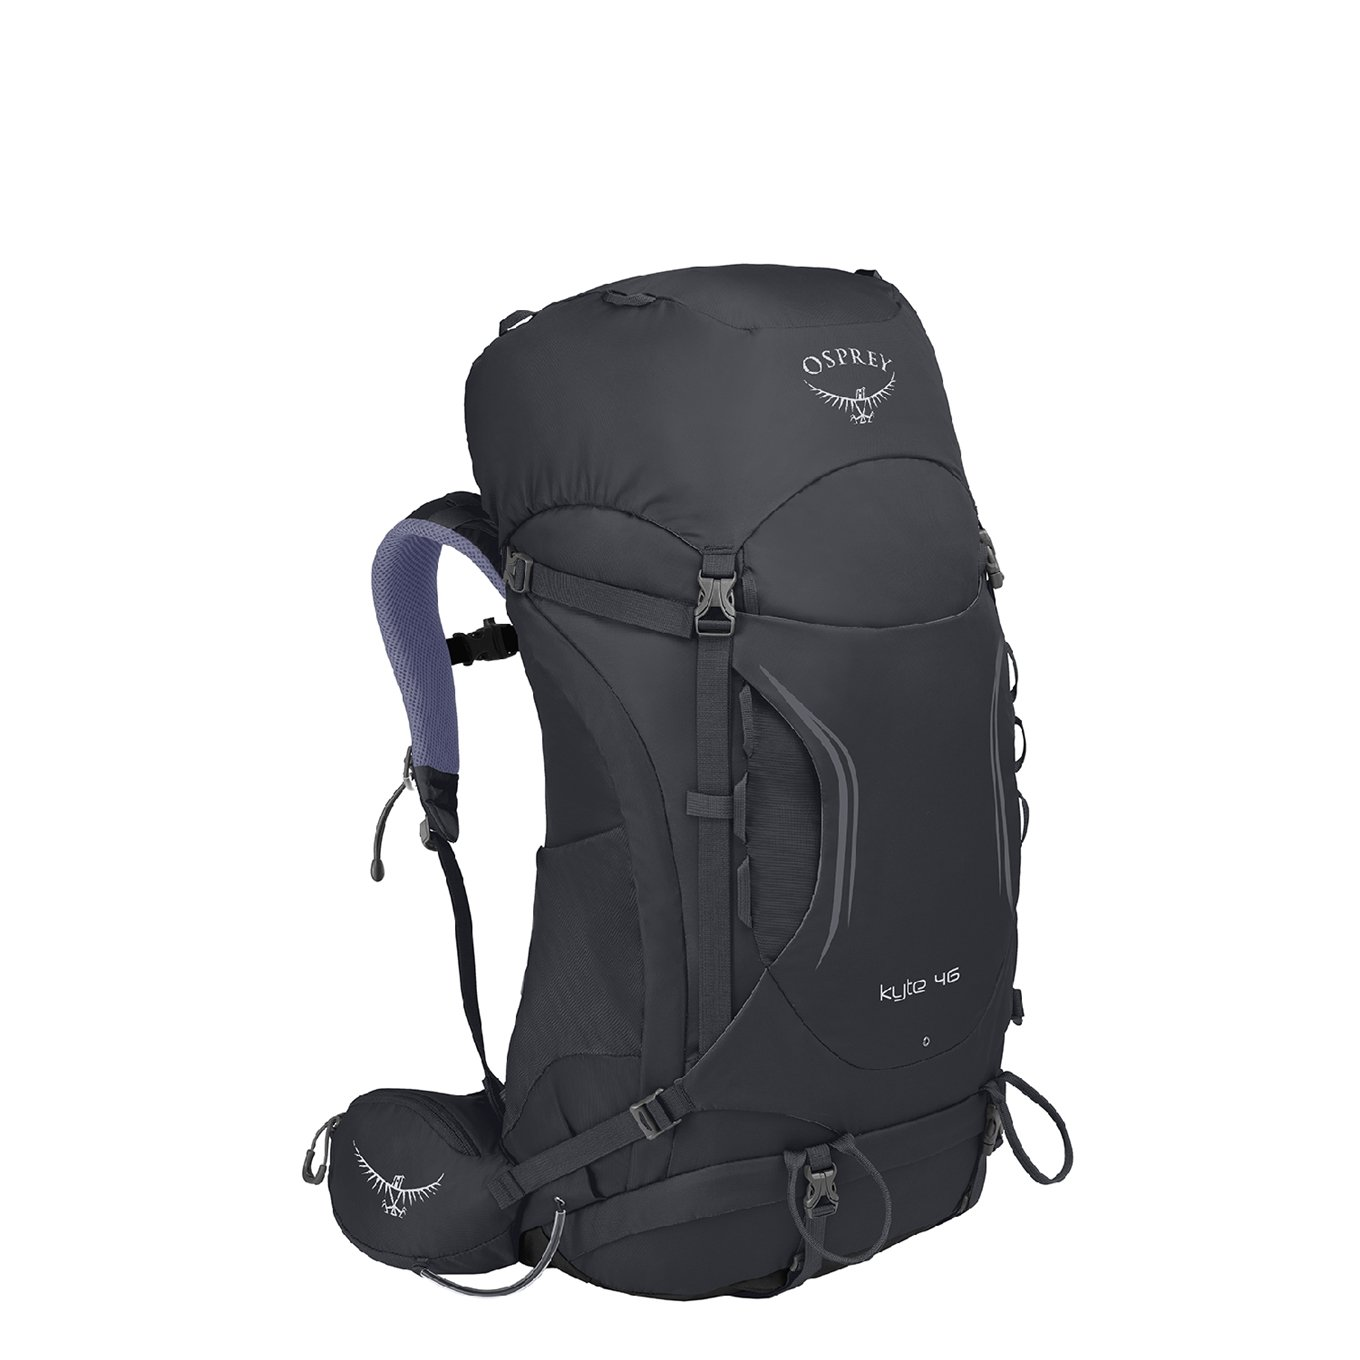 Osprey Kyte 46 Women&apos;s Backpack S/M siren grey backpack <br/></noscript><img class=